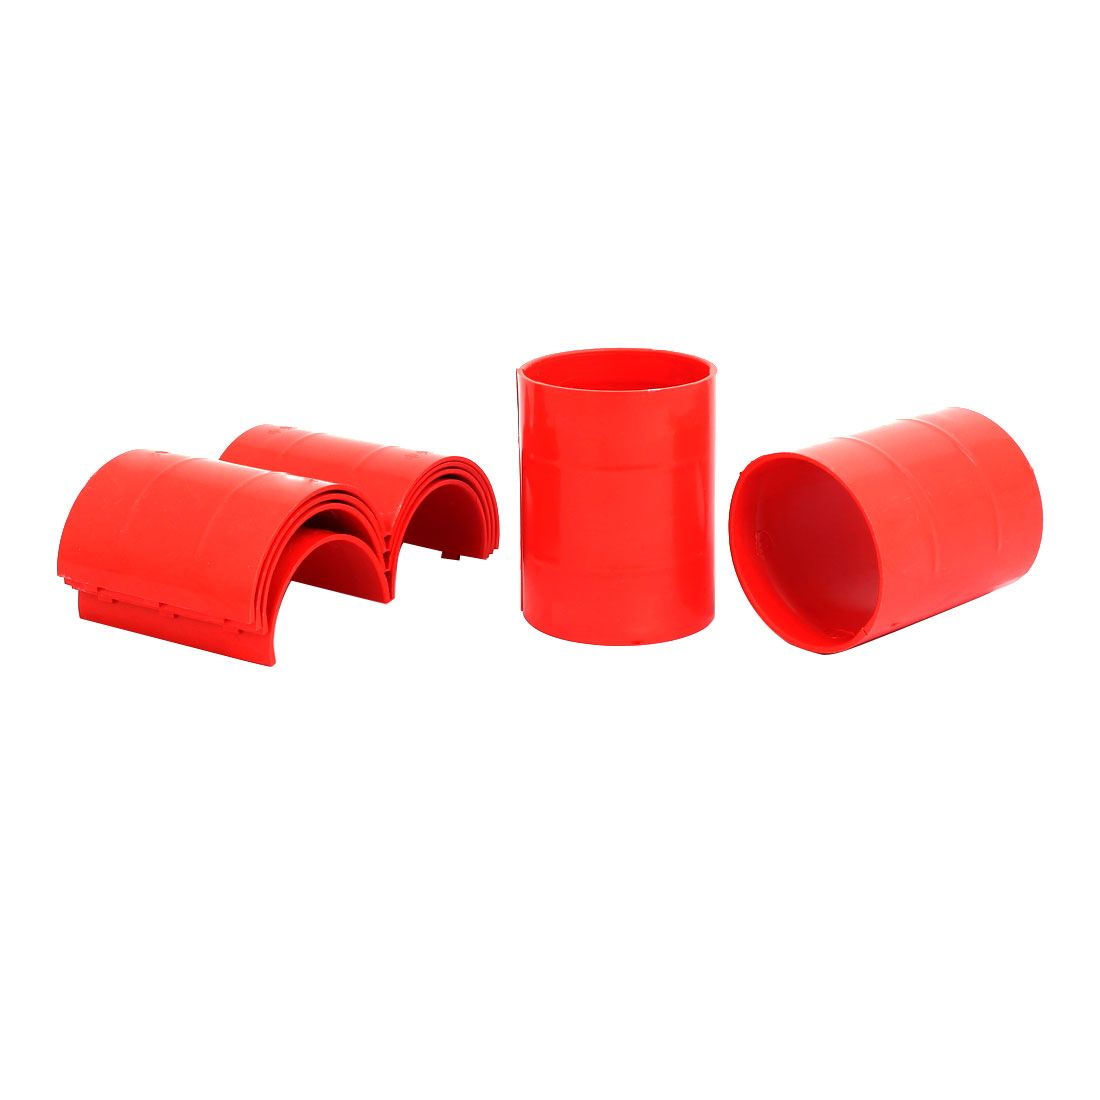 63mm Dia 2mm Thickness Central Air Conditioning Pipe Tube Clamp Red 6pcs